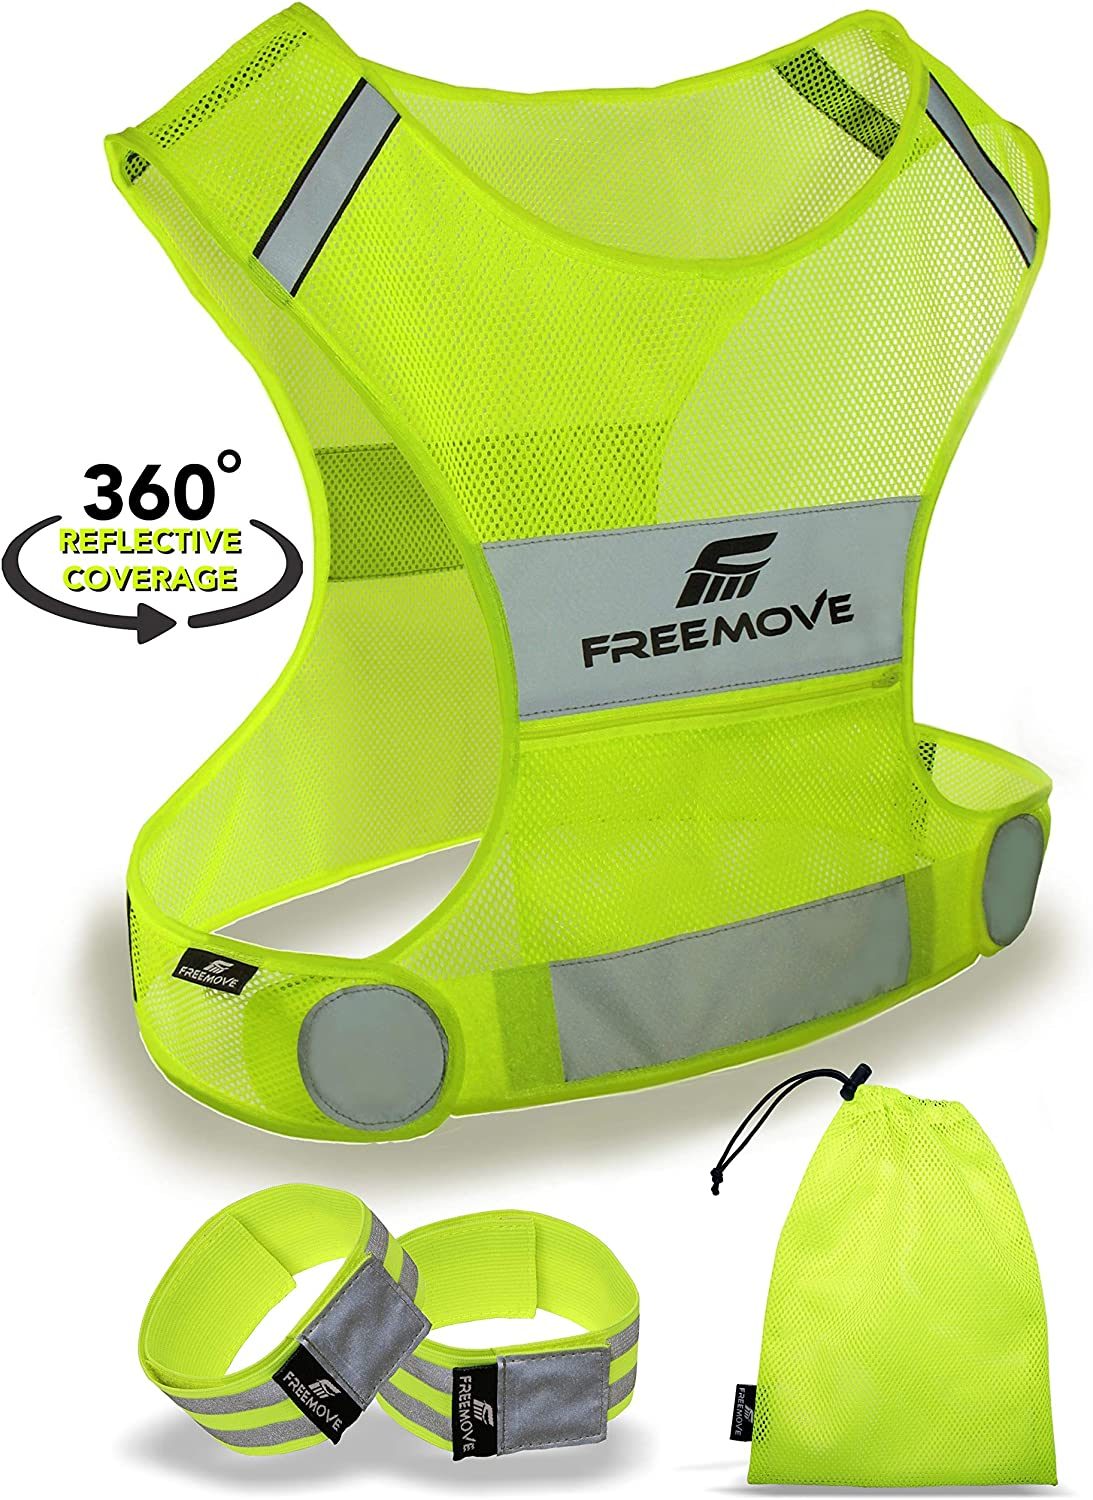 No.1 Reflective Vest Running Gear   YOUR BEST CHOICE TO STAY VISIBLE   Ultralight & Comfy Motorcycle Reflective Vest   Large Pocket & Adjustable Waist   Safety Vest in 6 Sizes + Hi Vis Bands & Bag : Sports & Outdoors